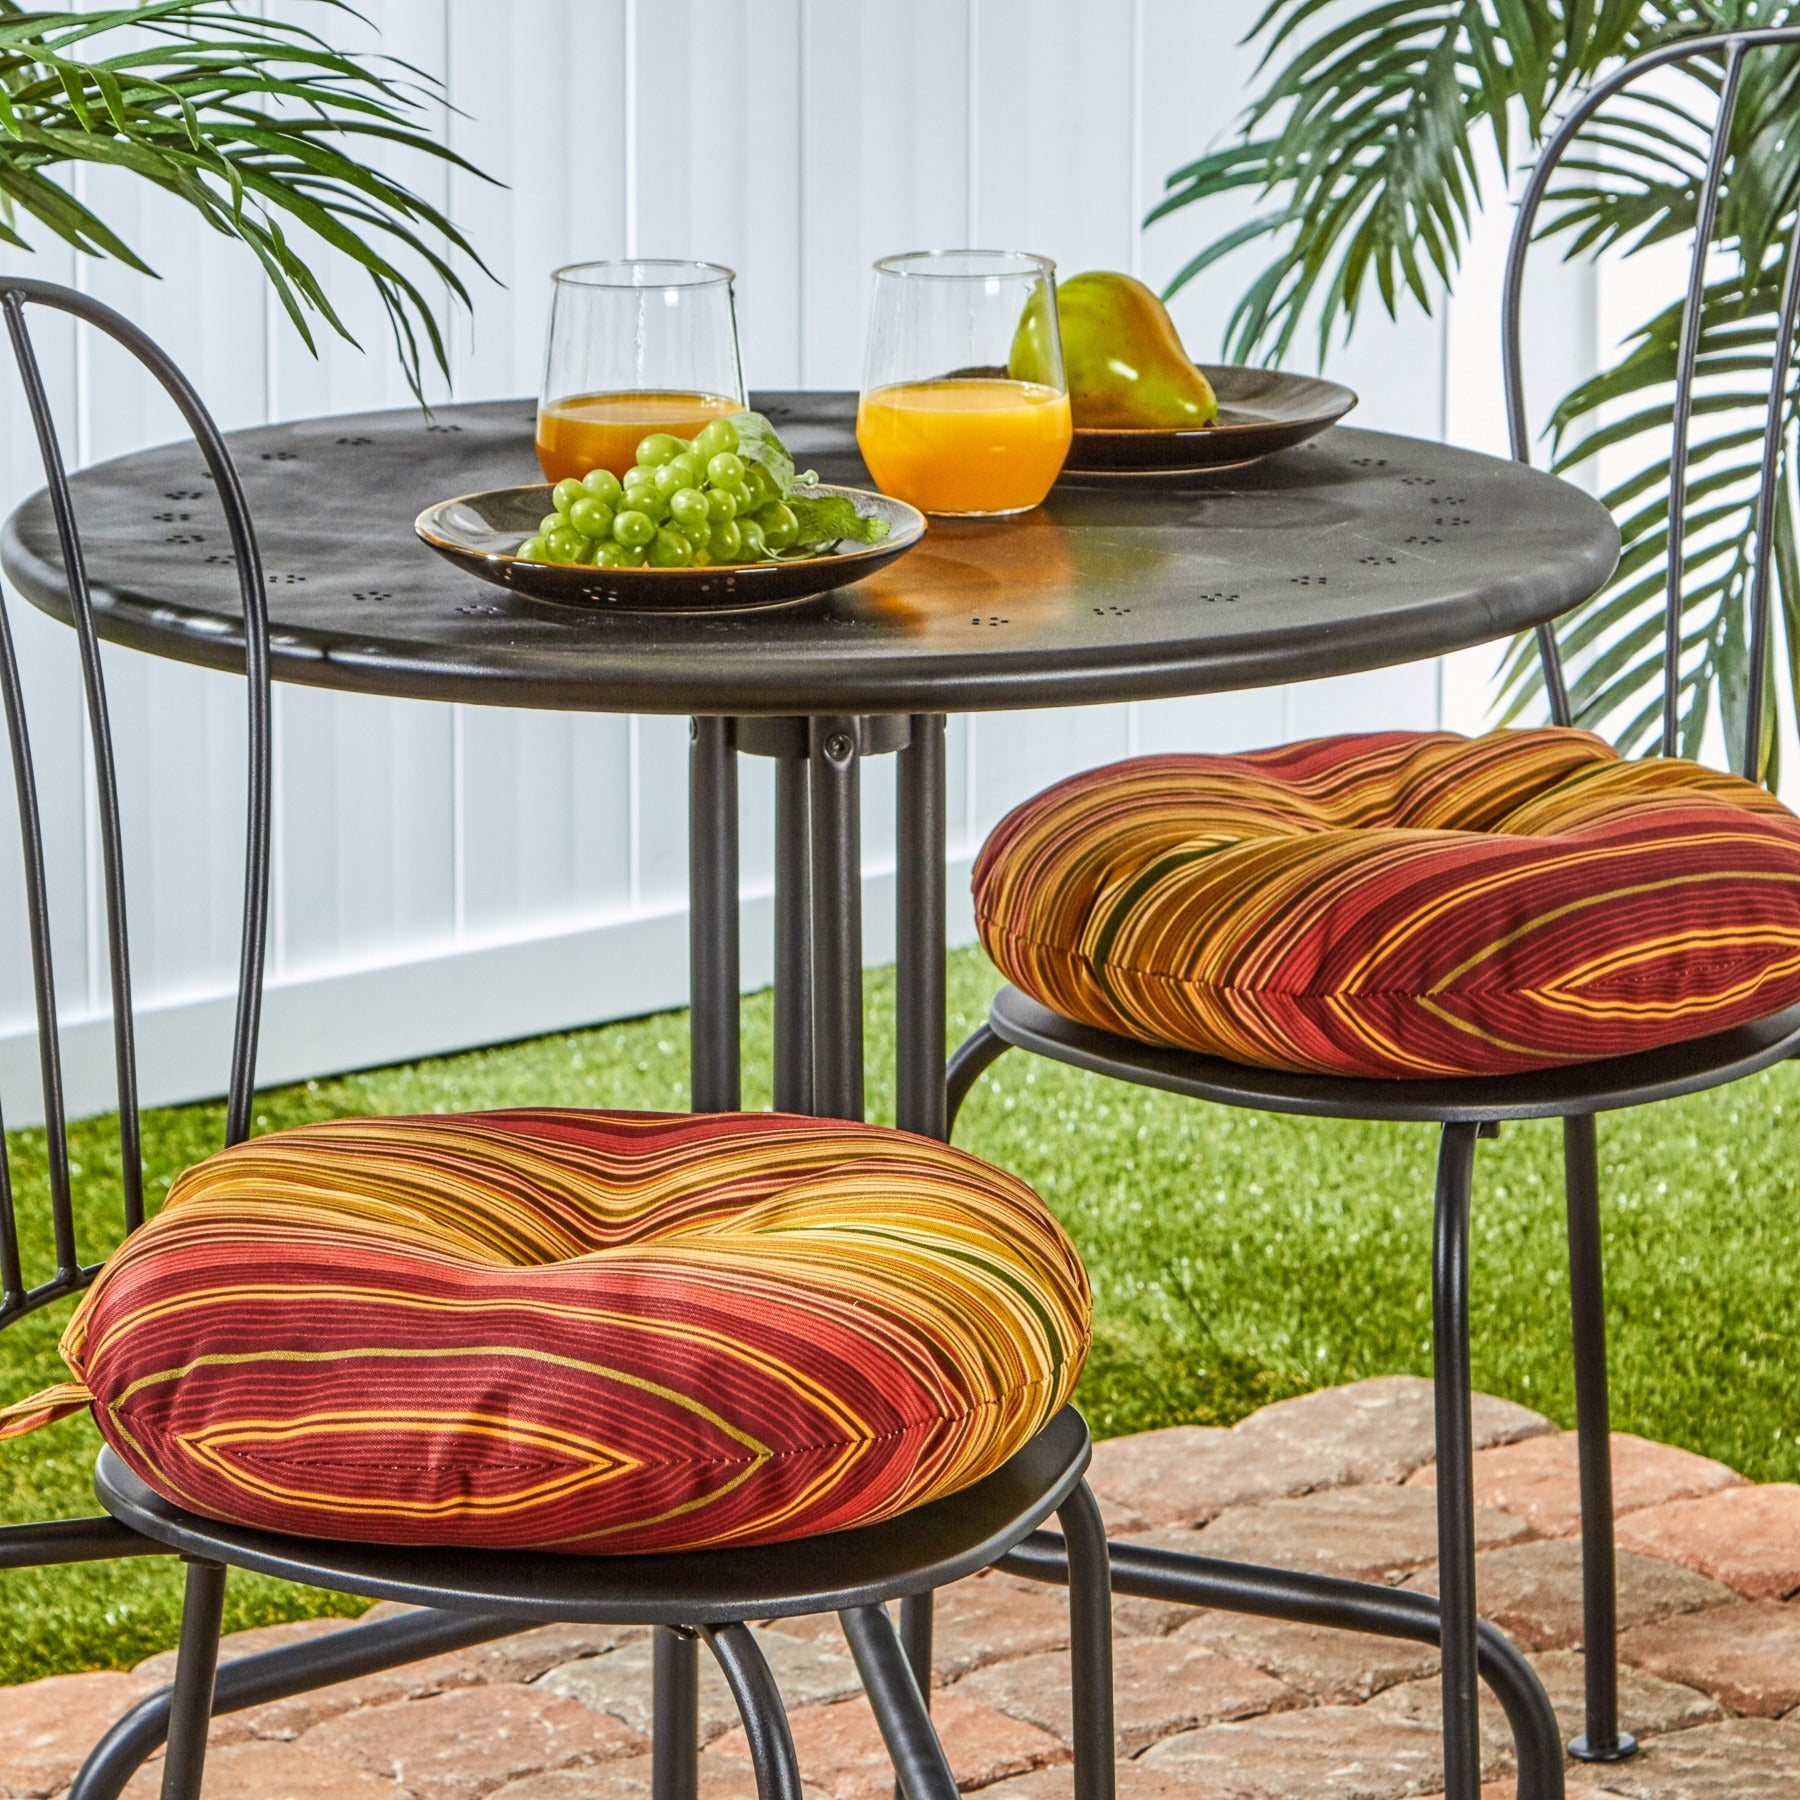 Outdoor 15 Inch Kinnabari Stripe Bistro Chair Cushions Set Of 2 15w X 15l Free Shipping On Orders Over 45 7860684